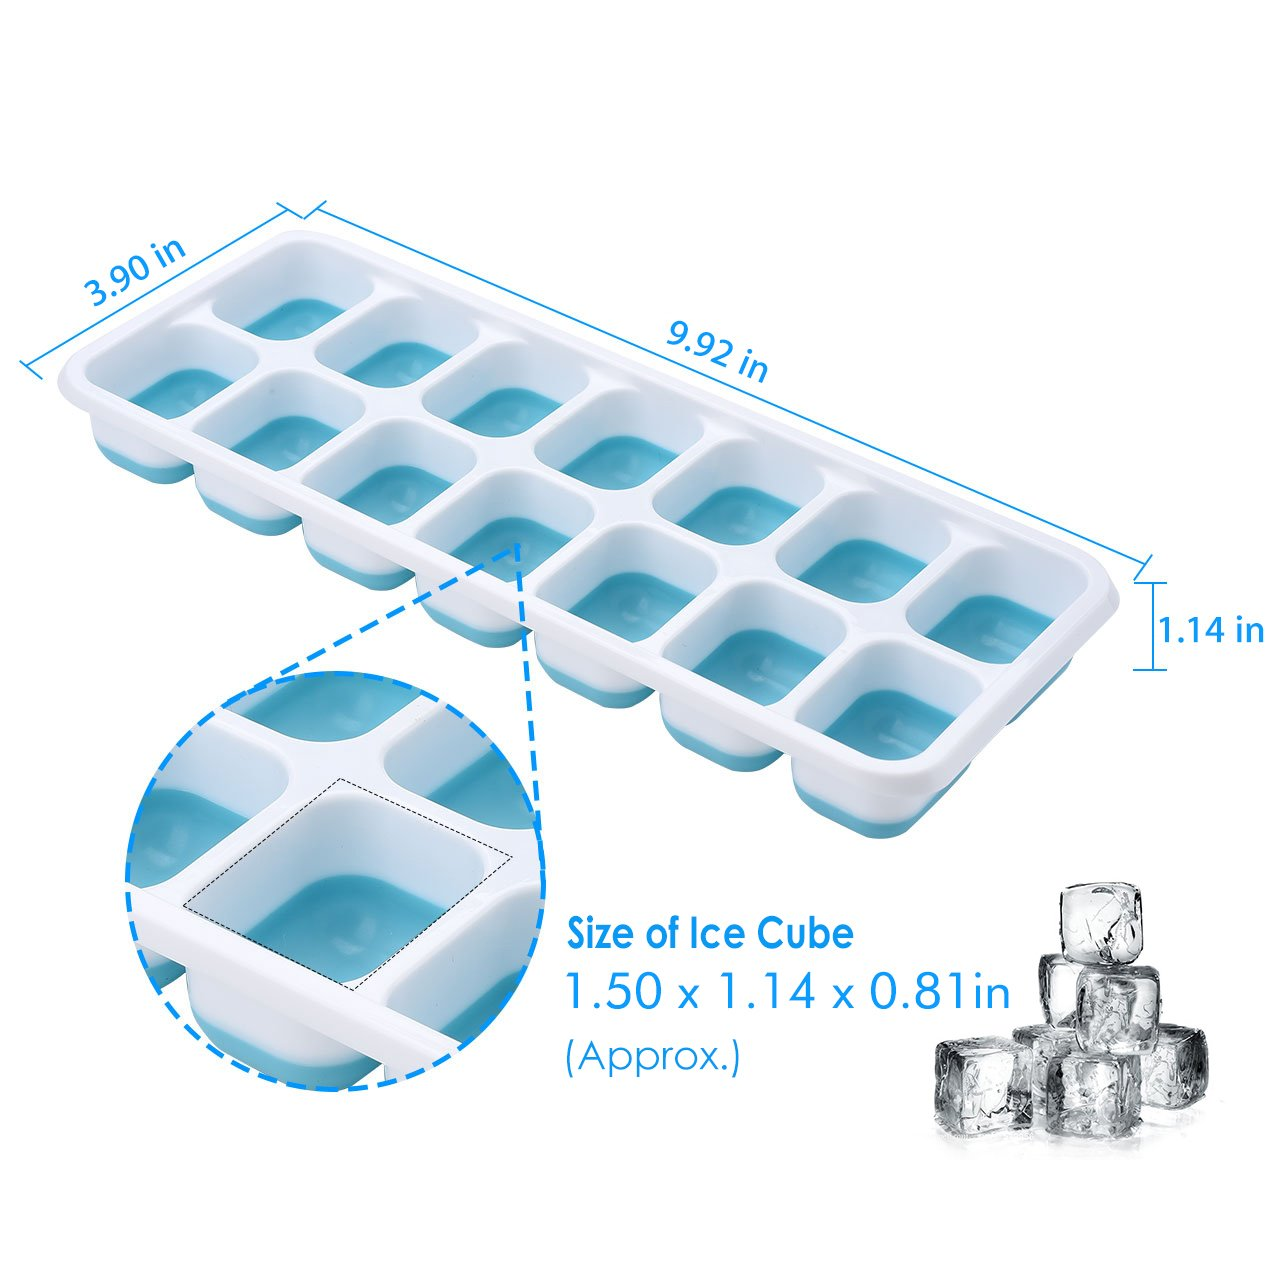 OMorc Ice Cube Trays 4 Pack, Easy-Release Silicone and Flexible 14-Ice Trays with Spill-Resistant Removable Lid, LFGB Certified & BPA Free, Stackable by OMORC (Image #6)